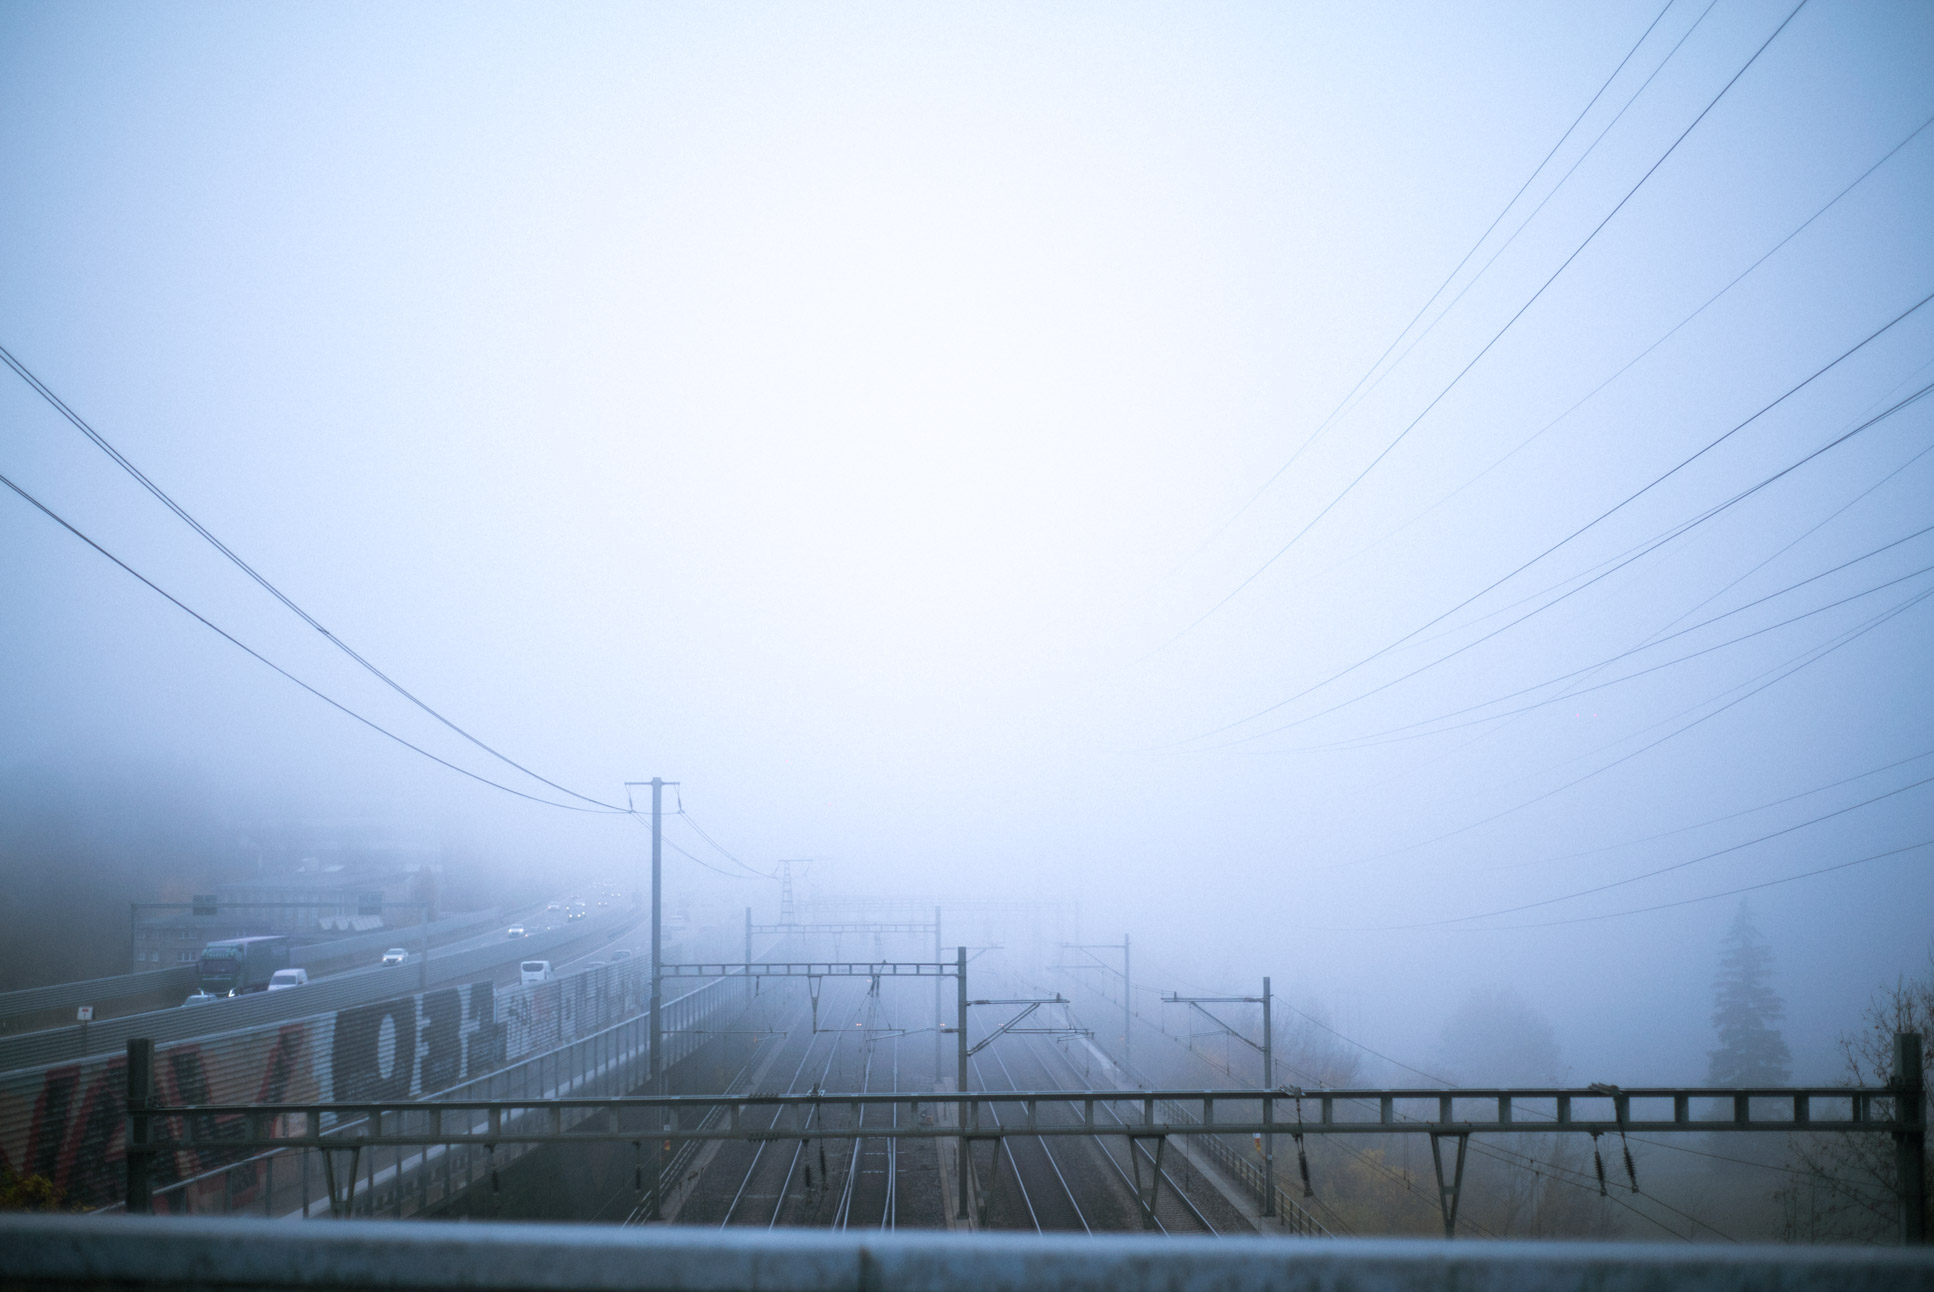 railway infrastructure in the fog. of course I take out my camera.